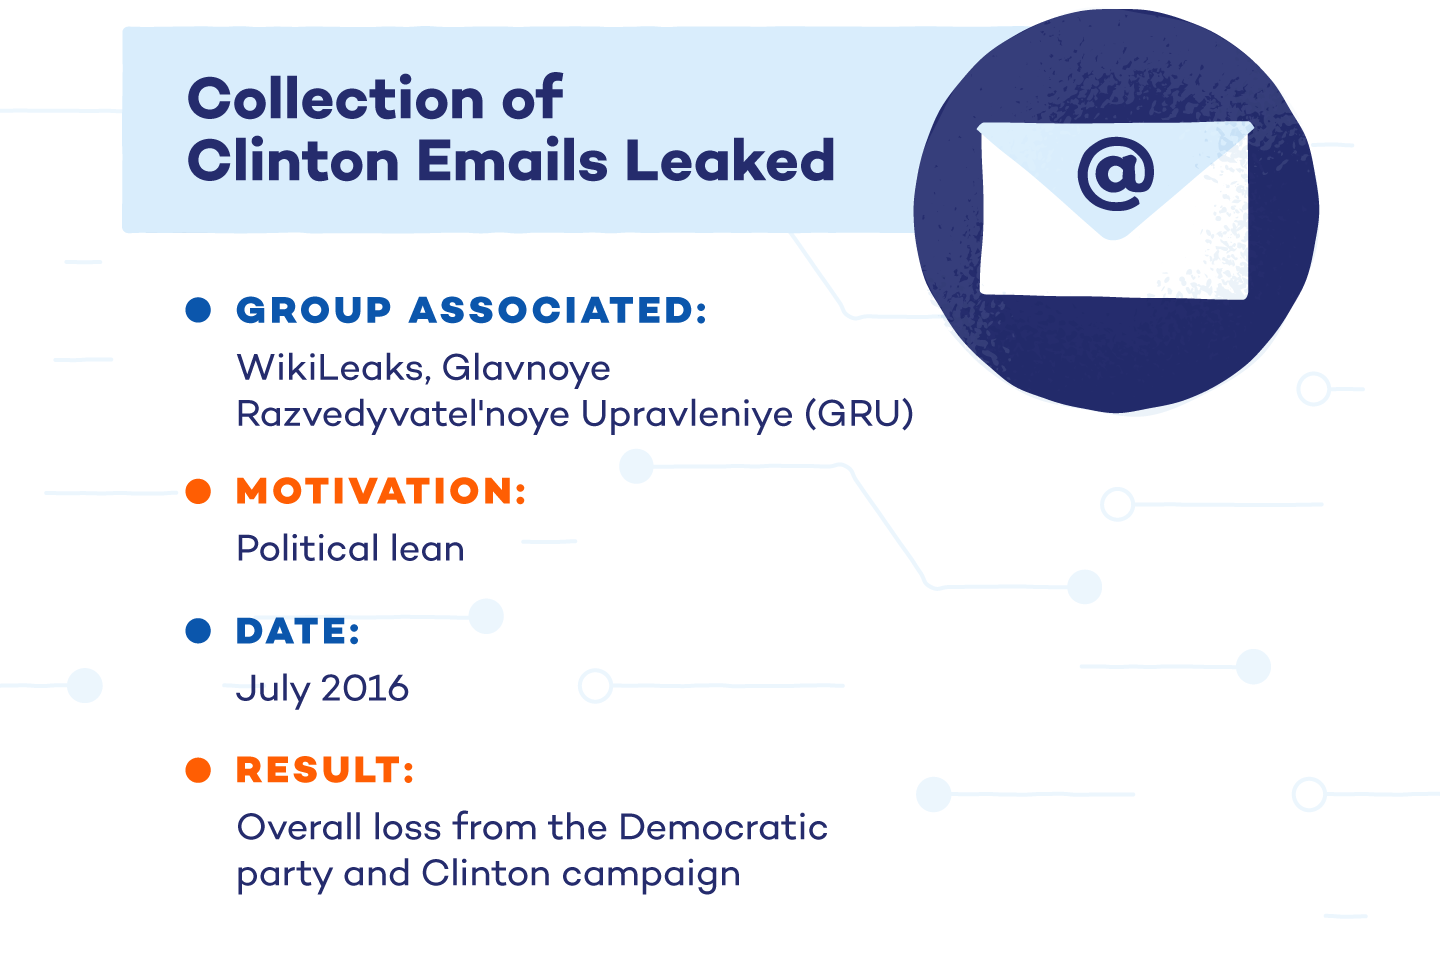 collection-of-clinton-emails-leaked